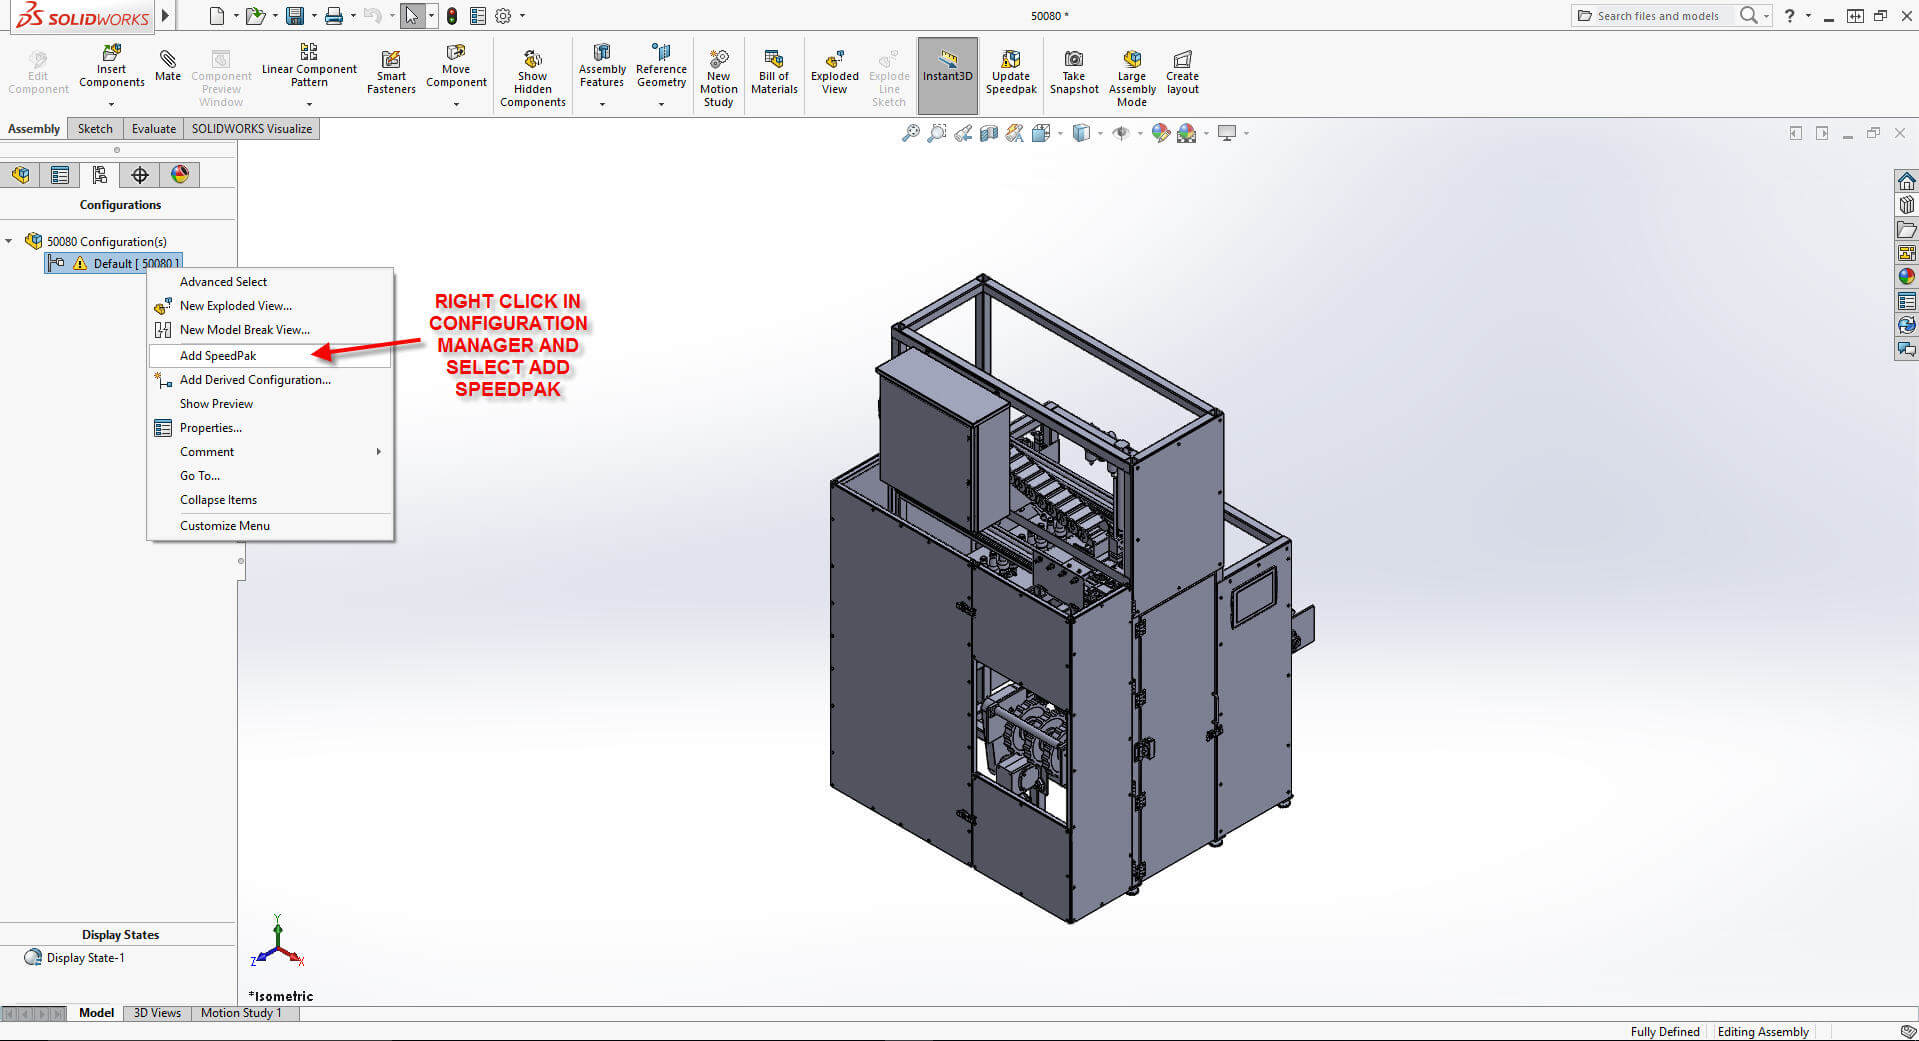 How To Increase Solidworks Performance When Using Vendor